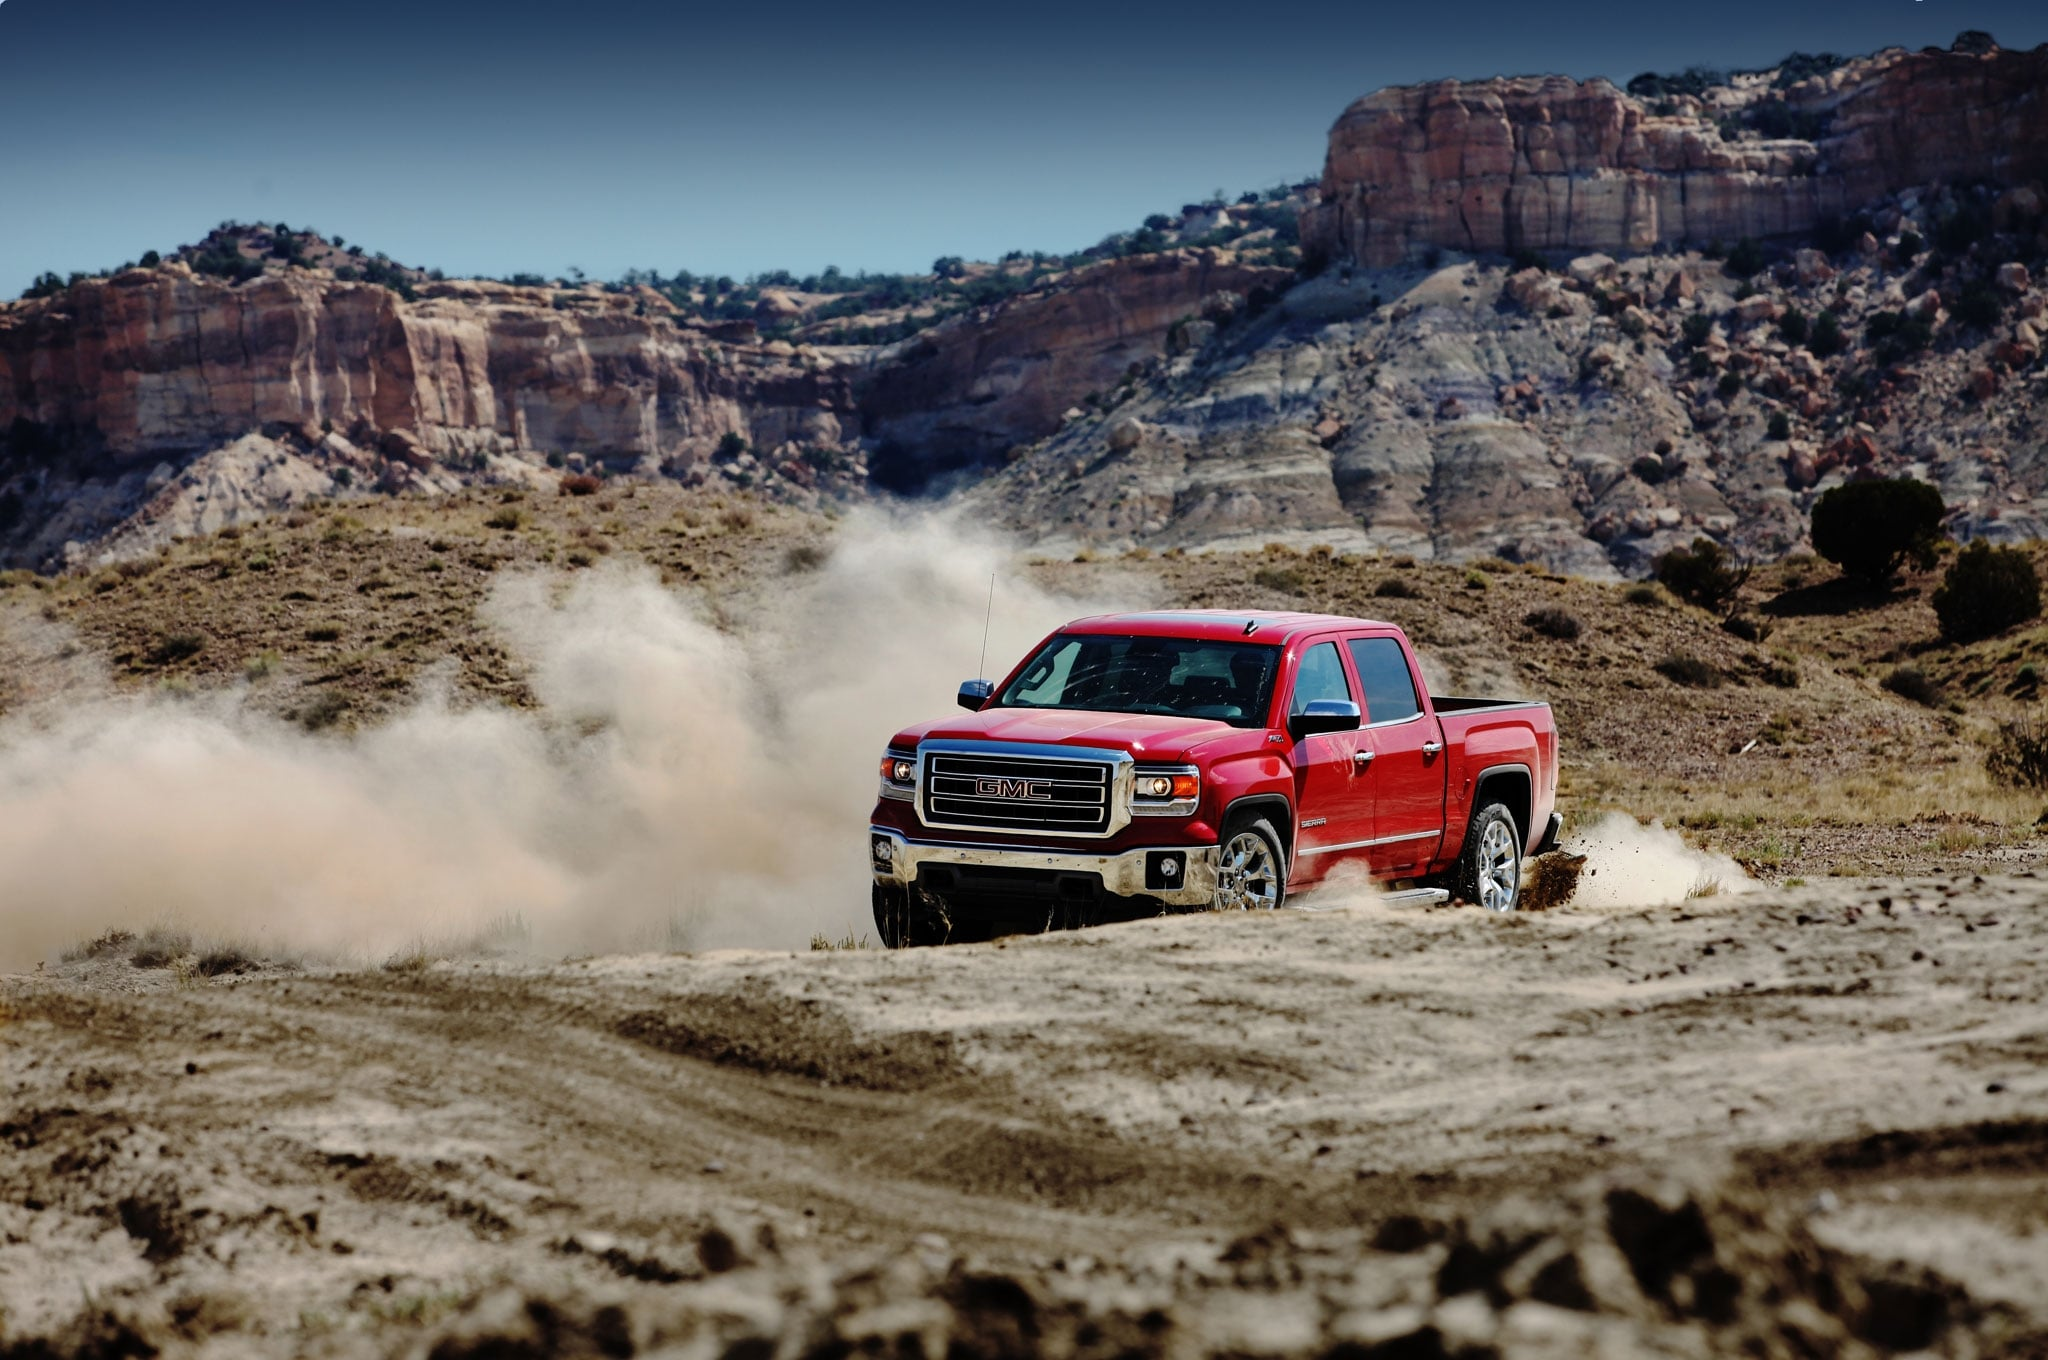 GMC Sierra Wallpapers and Background Images   stmednet 2048x1360